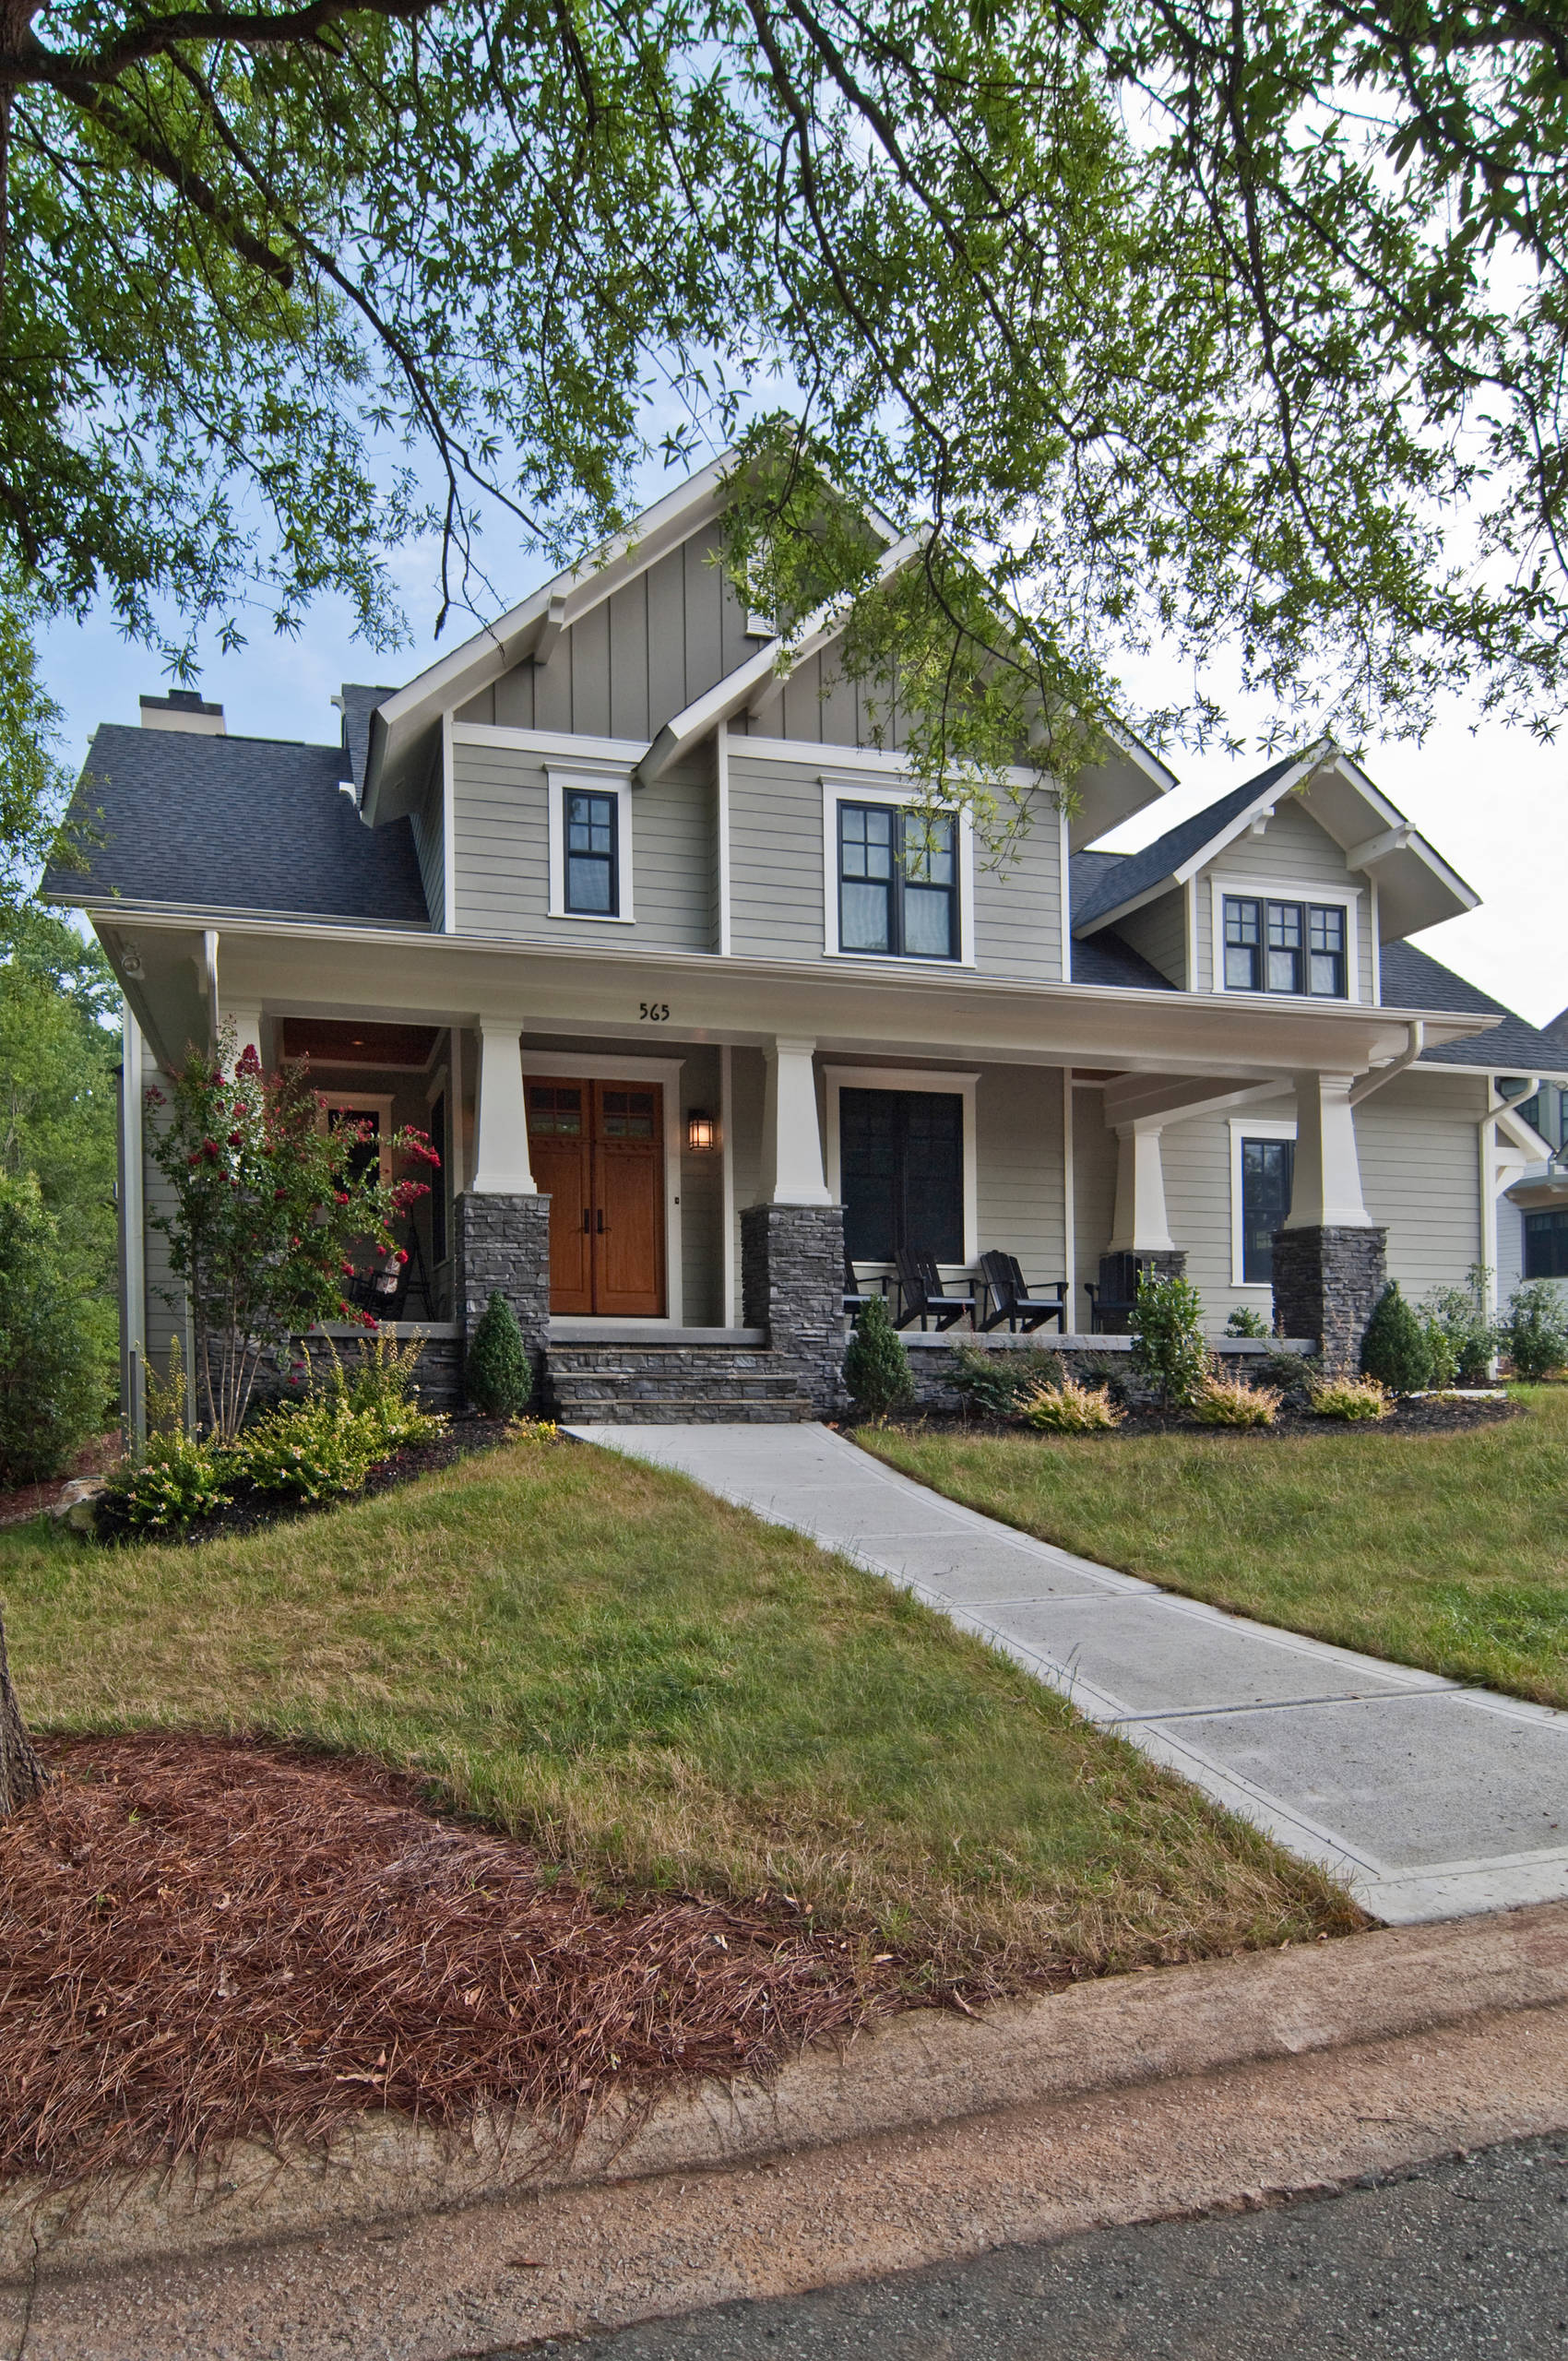 75 Beautiful Craftsman Exterior Home Pictures Ideas March 2021 Houzz